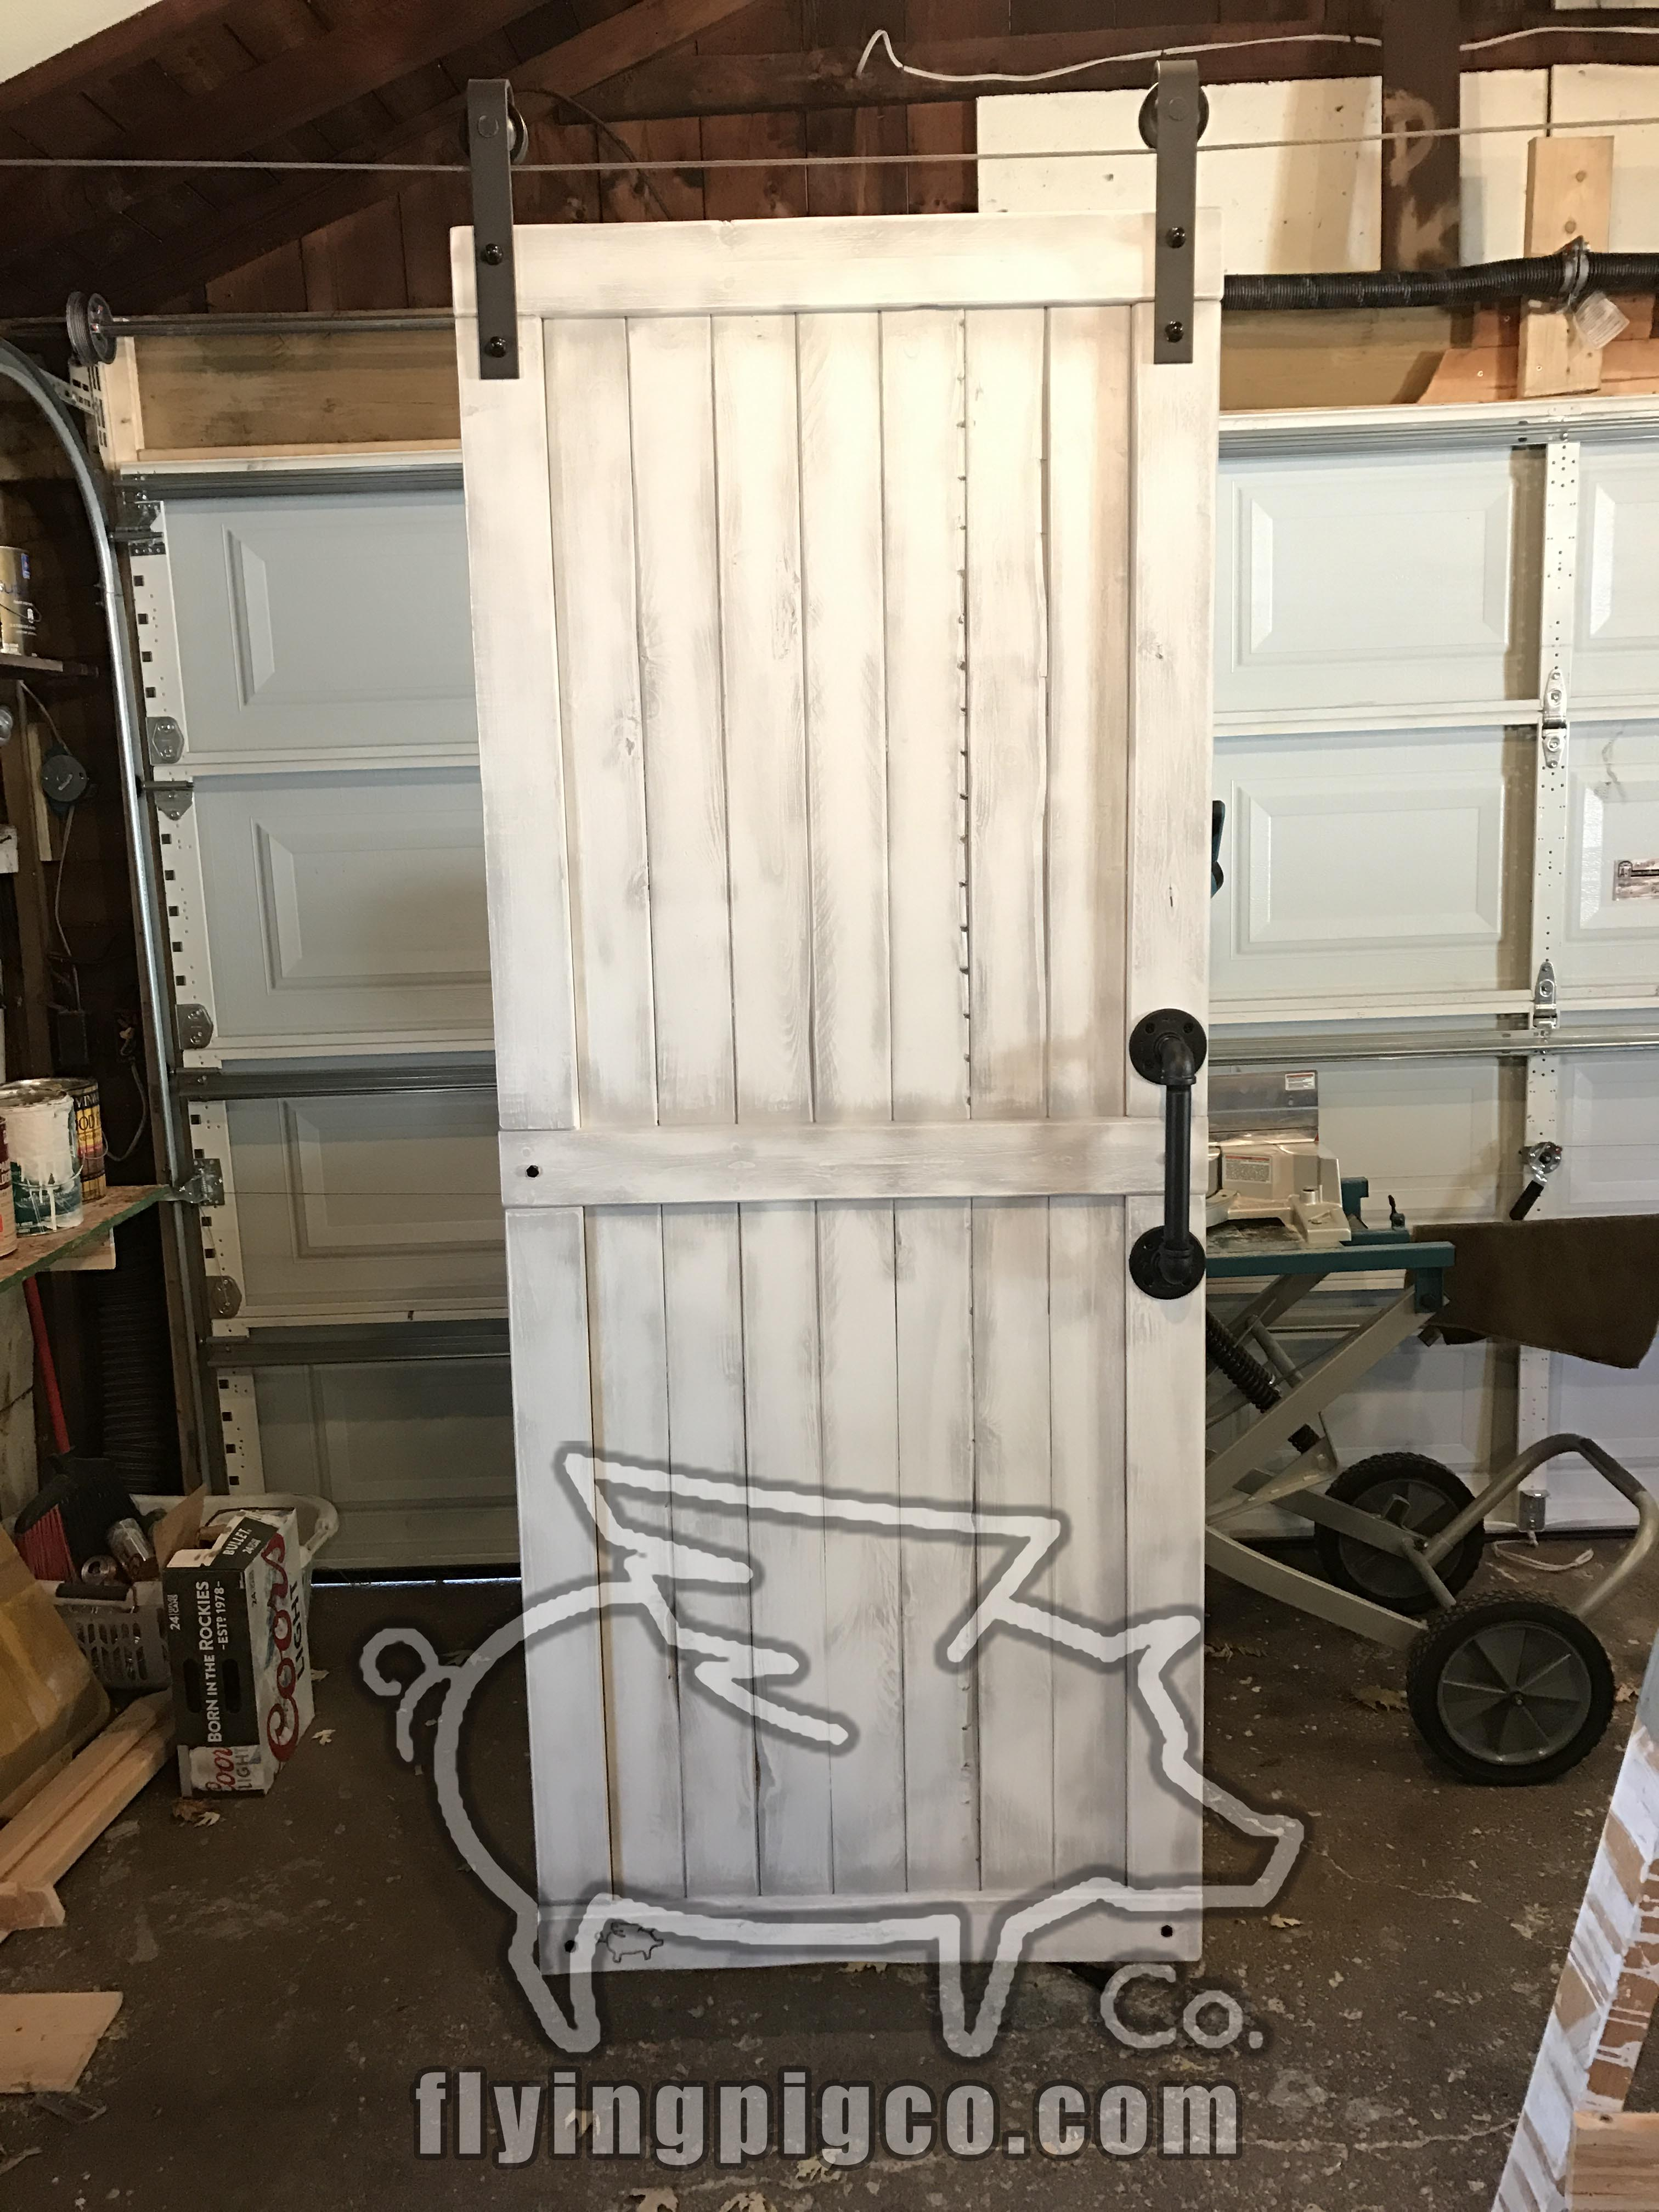 Antique White Distressed Doors Flying Pig Co